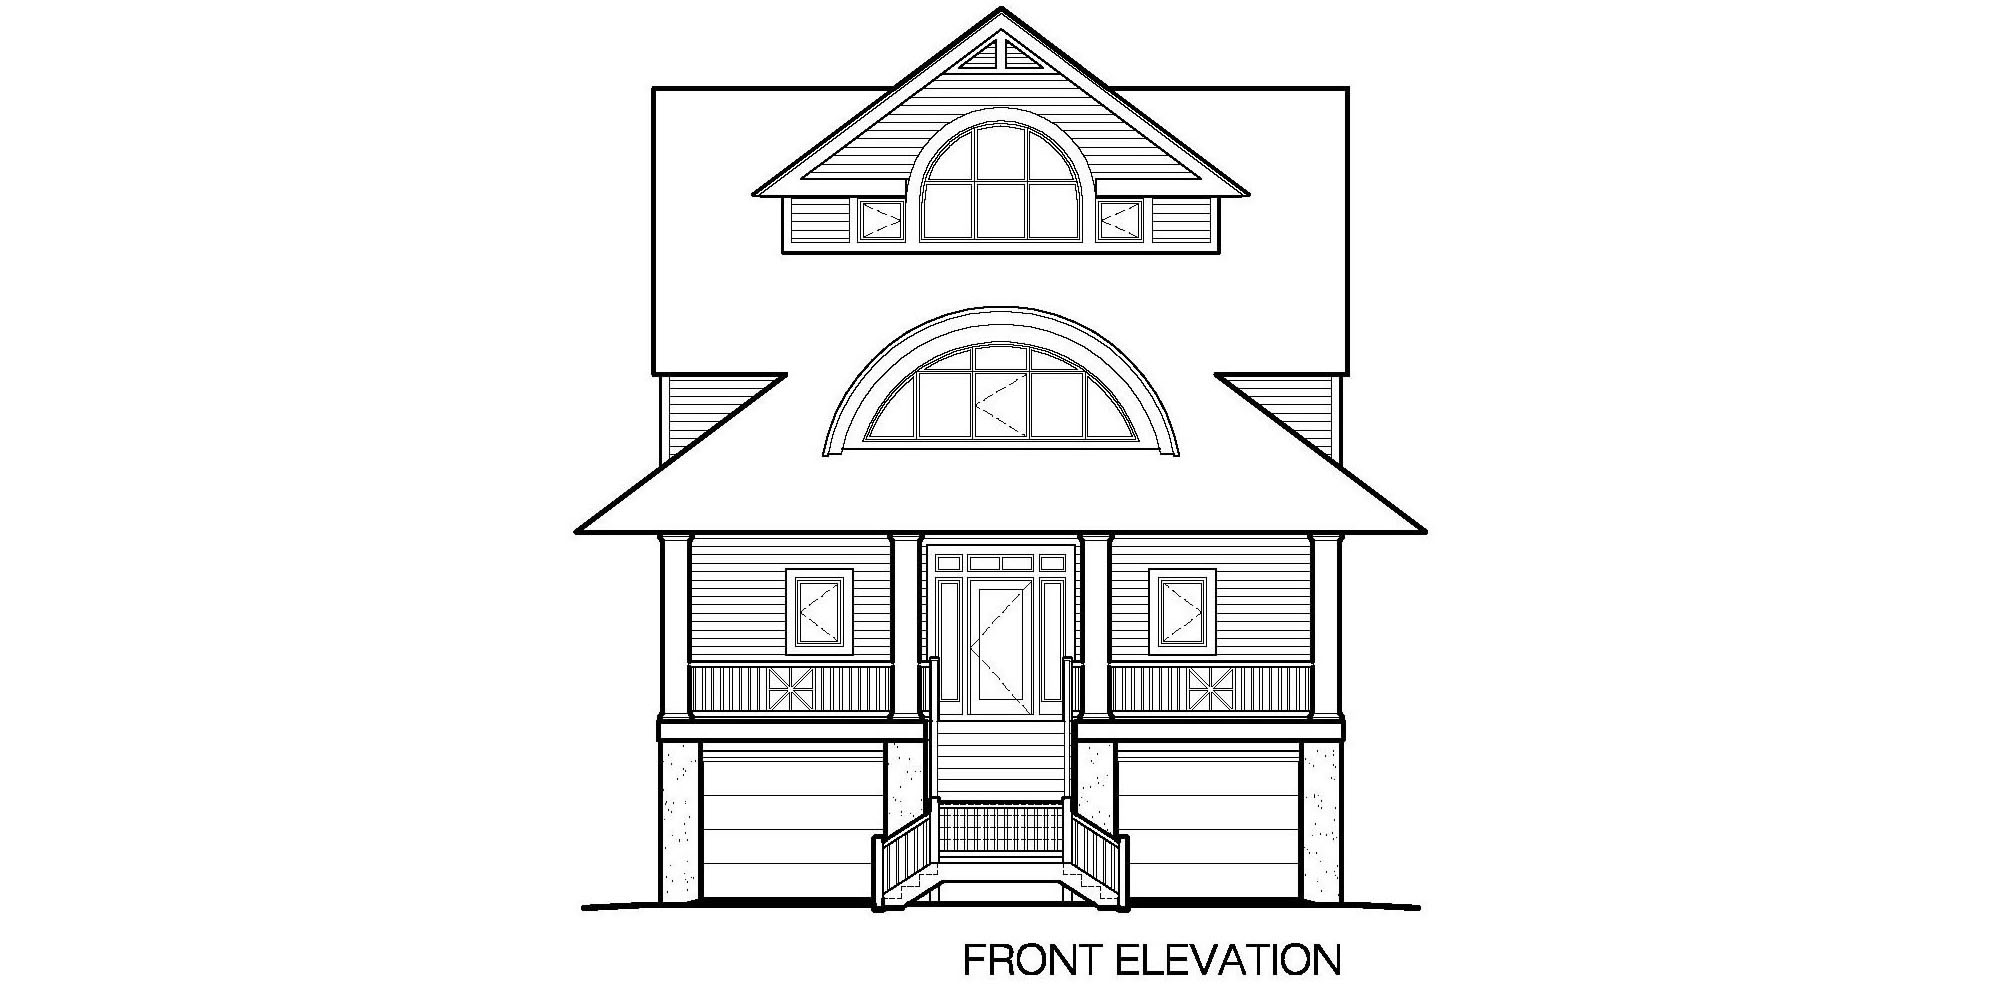 FORMwindspfgable additionally Coastal House Plans Narrow Lots in addition Beach house plans with tower together with 4 Story House Plans With Modern Contemporary Home Design Ideas furthermore 4 Story House Plans With Modern Contemporary Home Design Ideas. on coastal narrow lot house plans waterfront